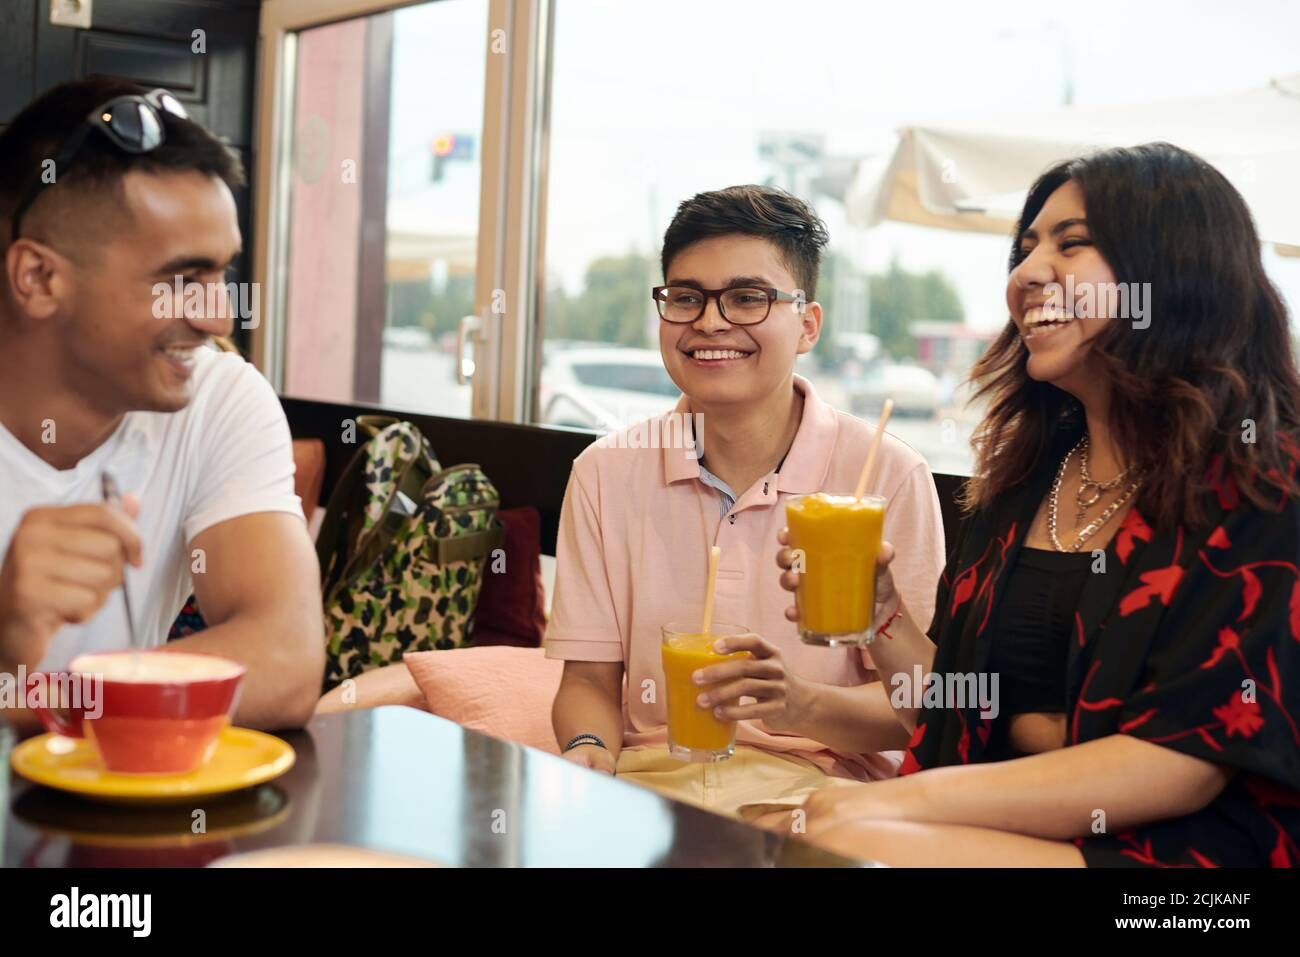 Meeting of friends. Three multi-ethnic friends are discussing something and laugh at it. Stock Photo